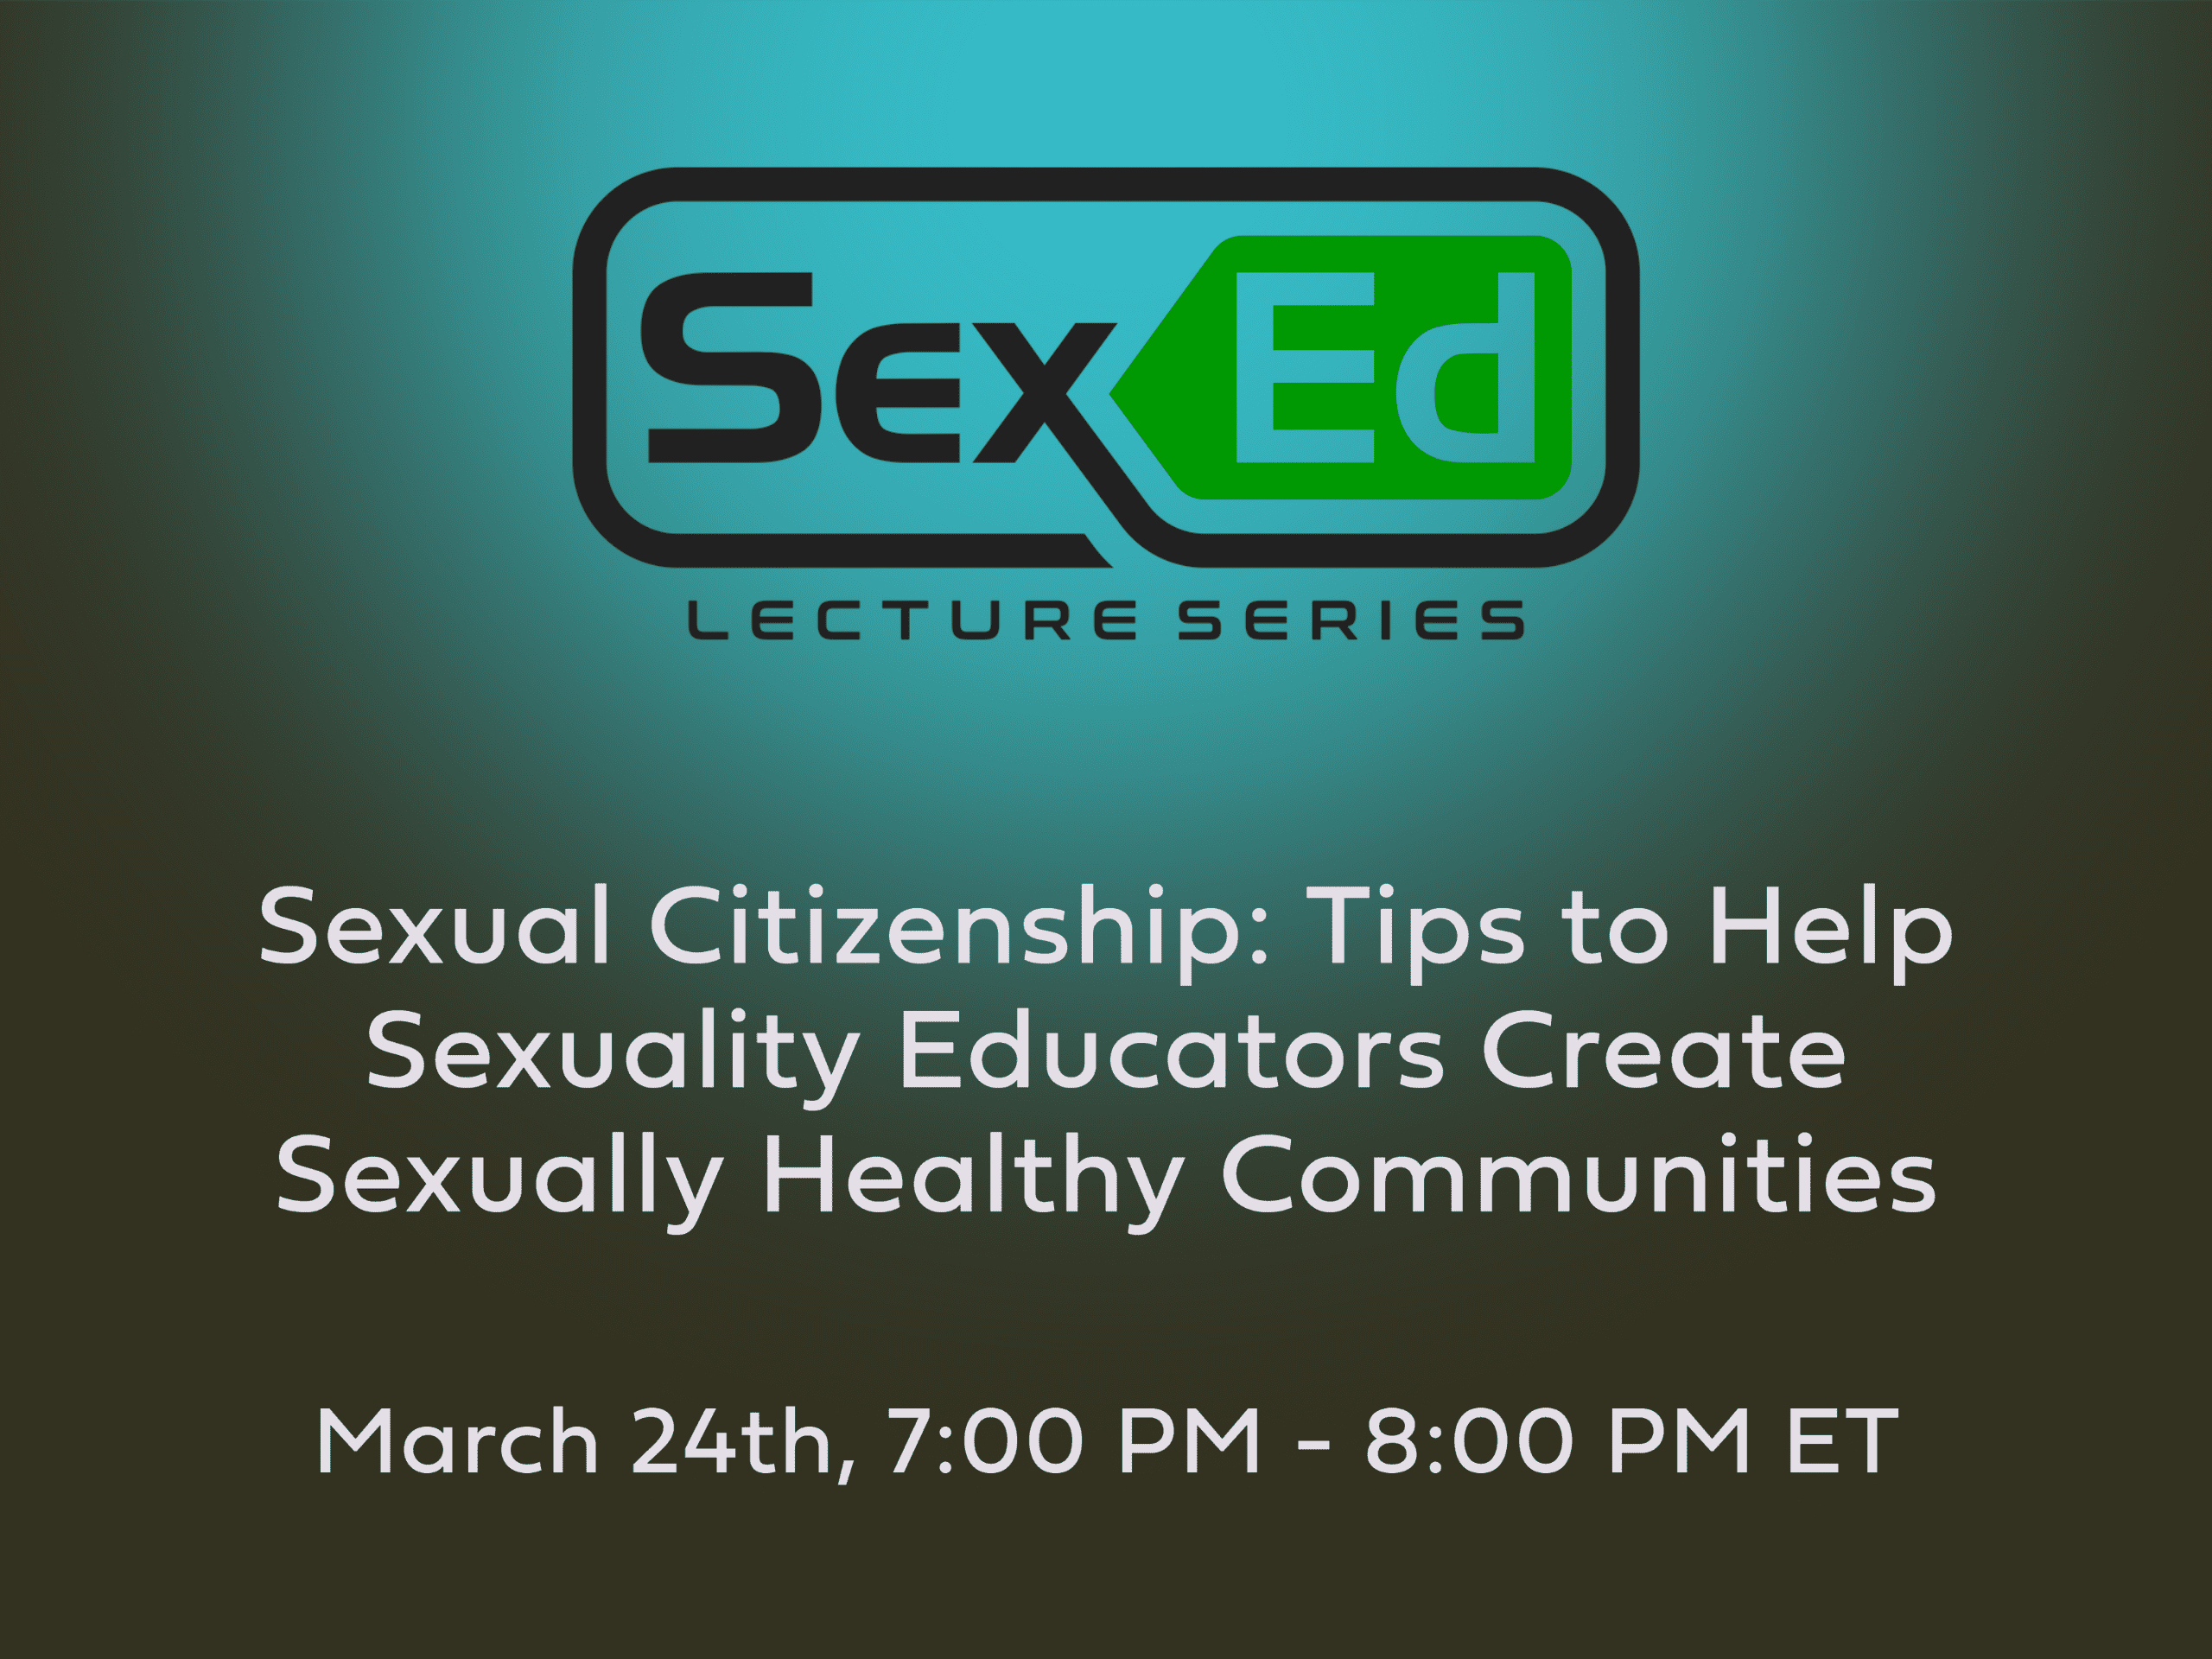 Sex Ed Lecture Series